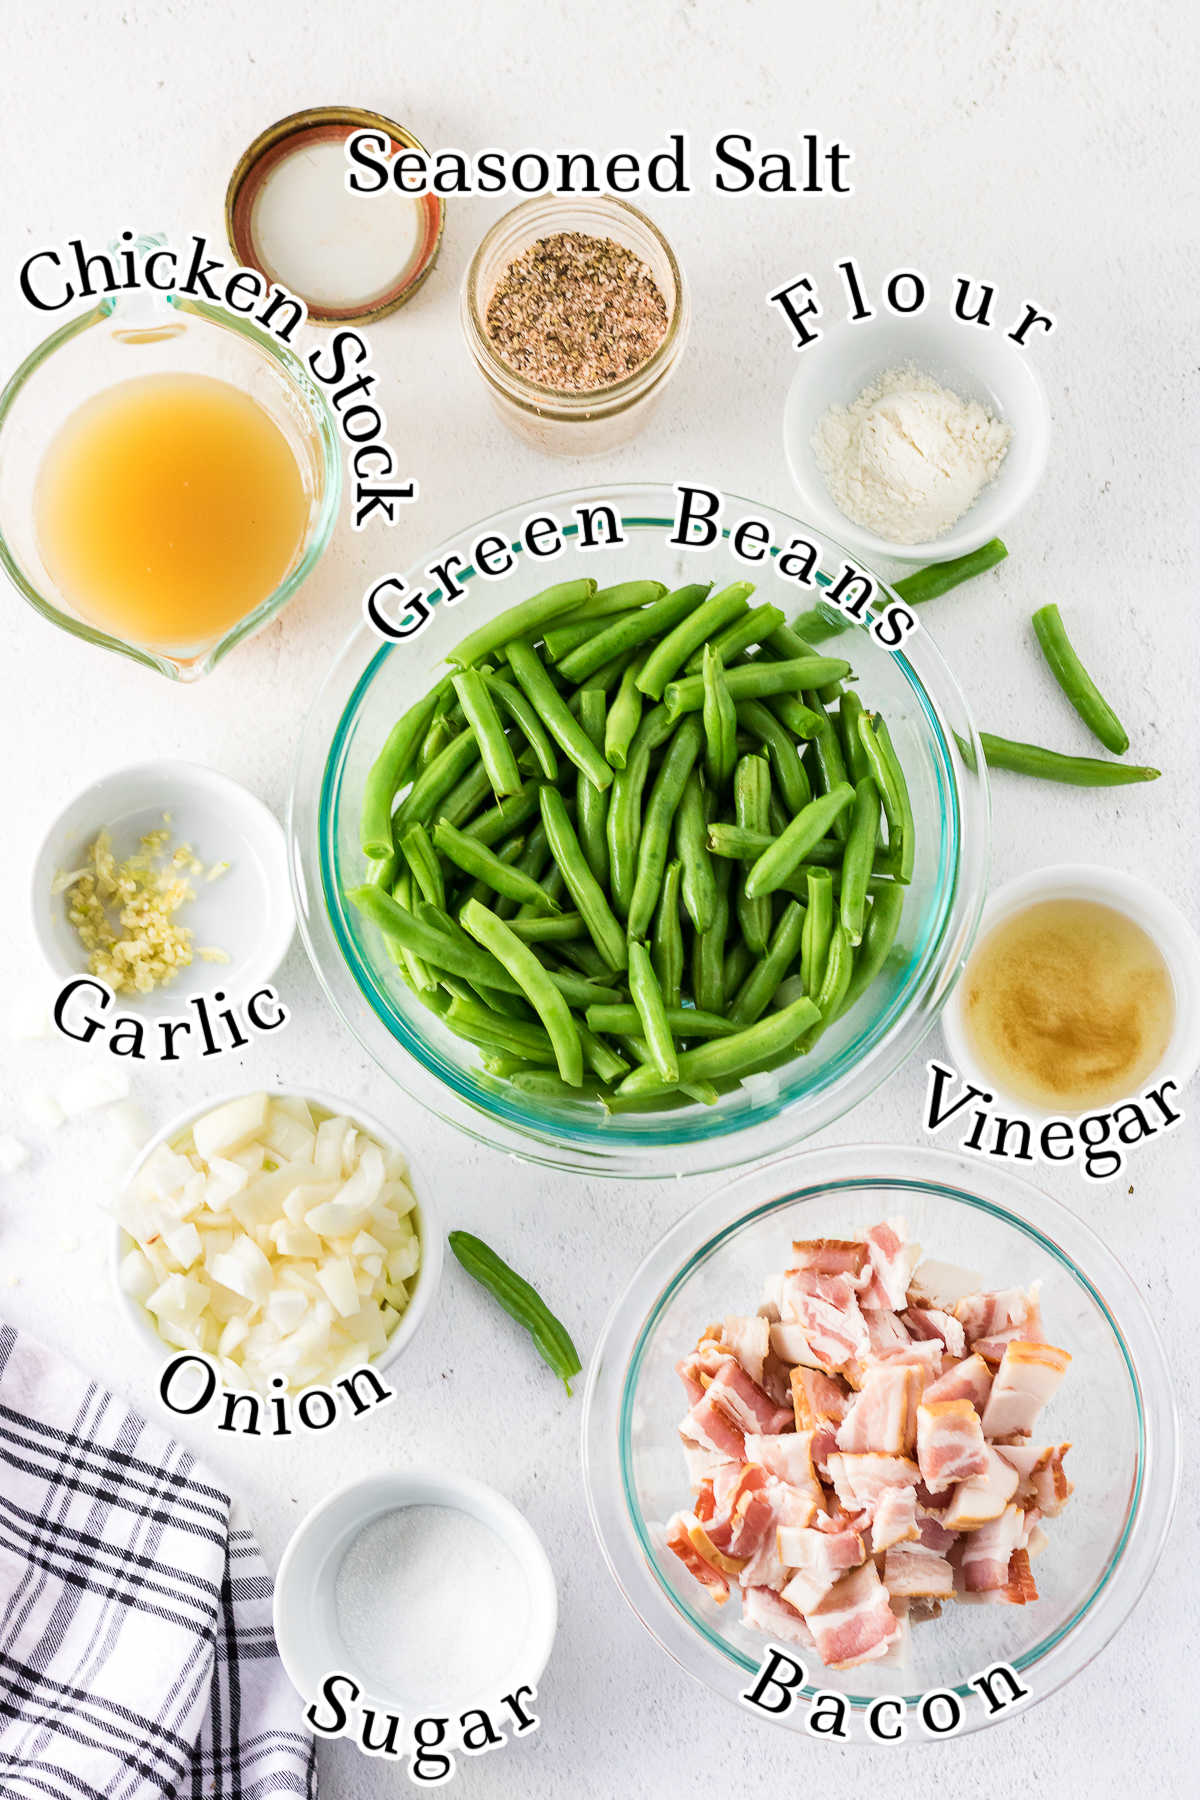 Labeled ingredients for smothered green beans.